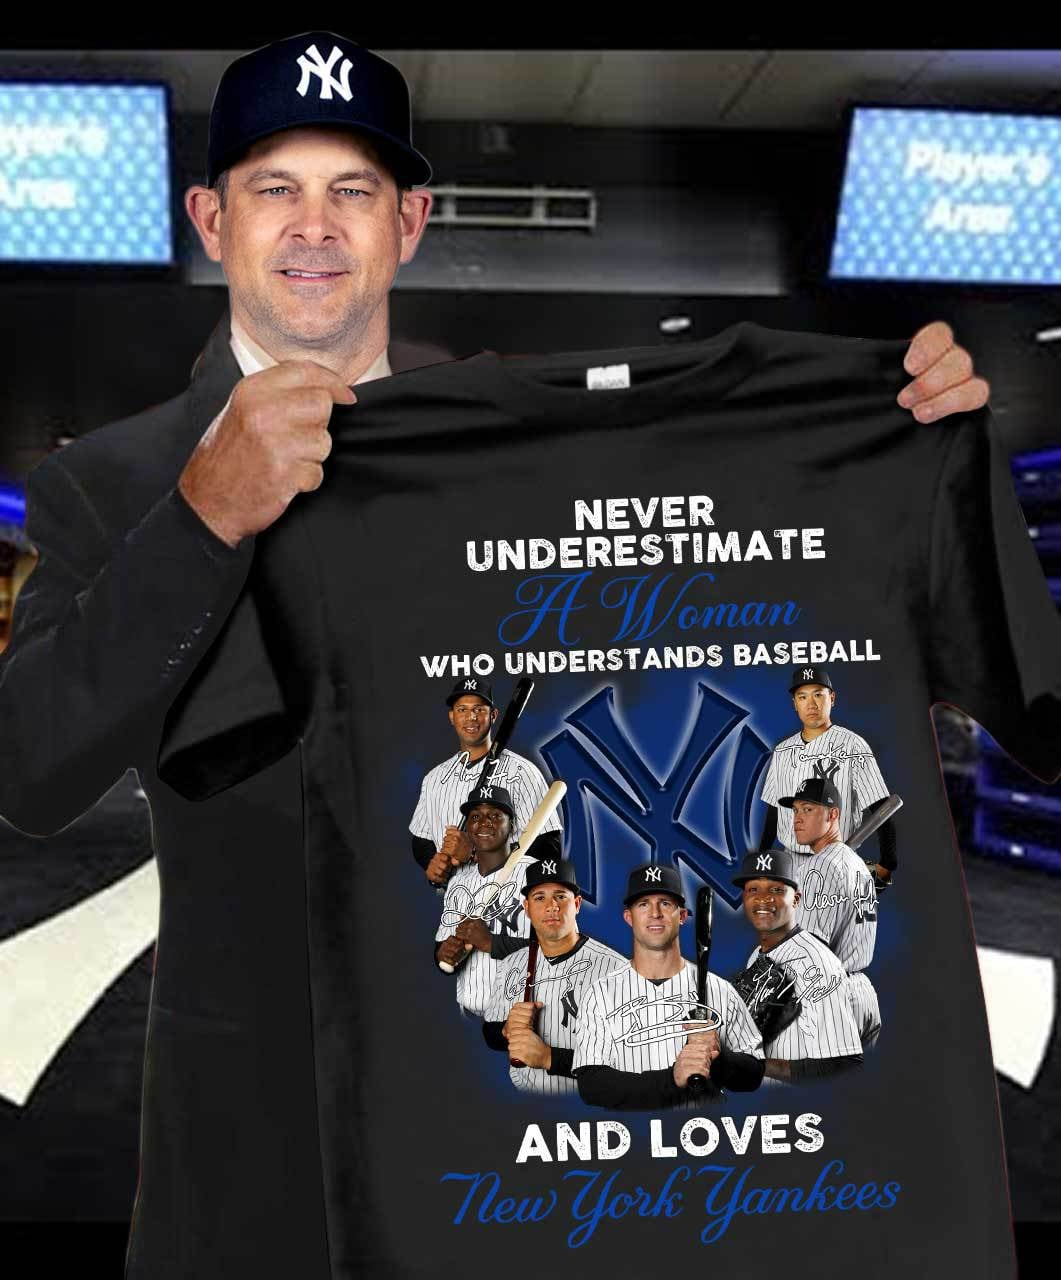 Never%20underestimate%20a%20woman%20who%20understands%20baseball%20and%20loves%20New%20York%20Yankees%20signatures%20shirt hoodieN9k141810T2POST - Official Never underestimate a woman who understands baseball and loves New York Yankees signatures shirt